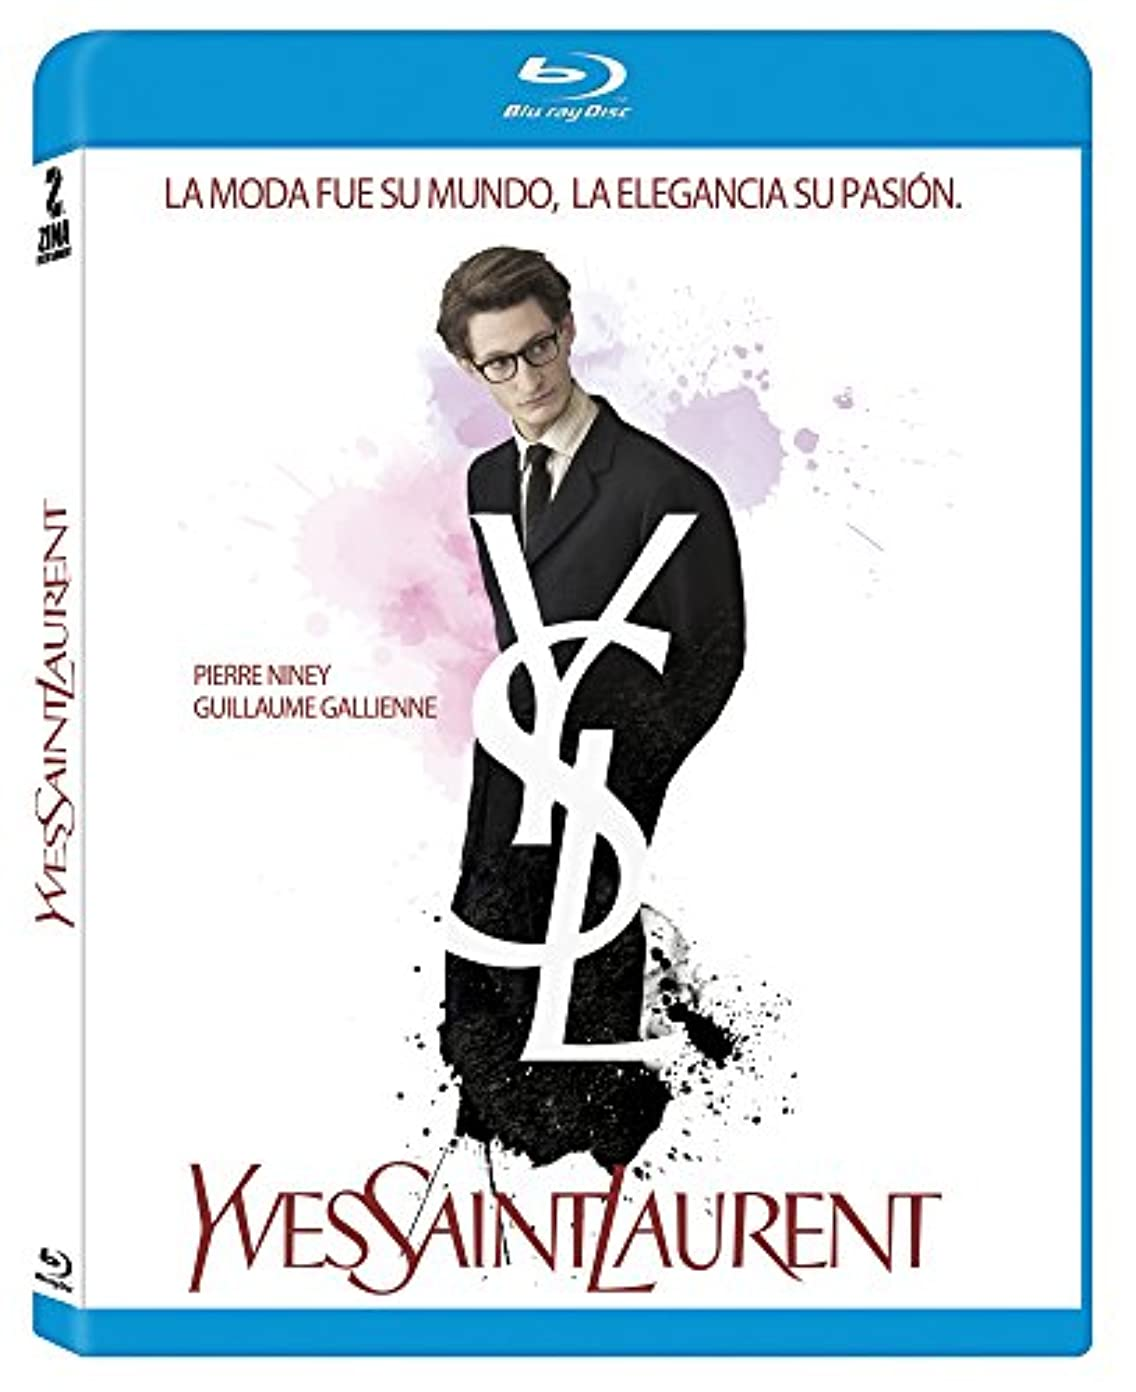 現象ブリーフケース今日Yves Saint Laurent Movie Blu Ray (Multiregion) (French Audio with Spanish Subtitles / No English Options)